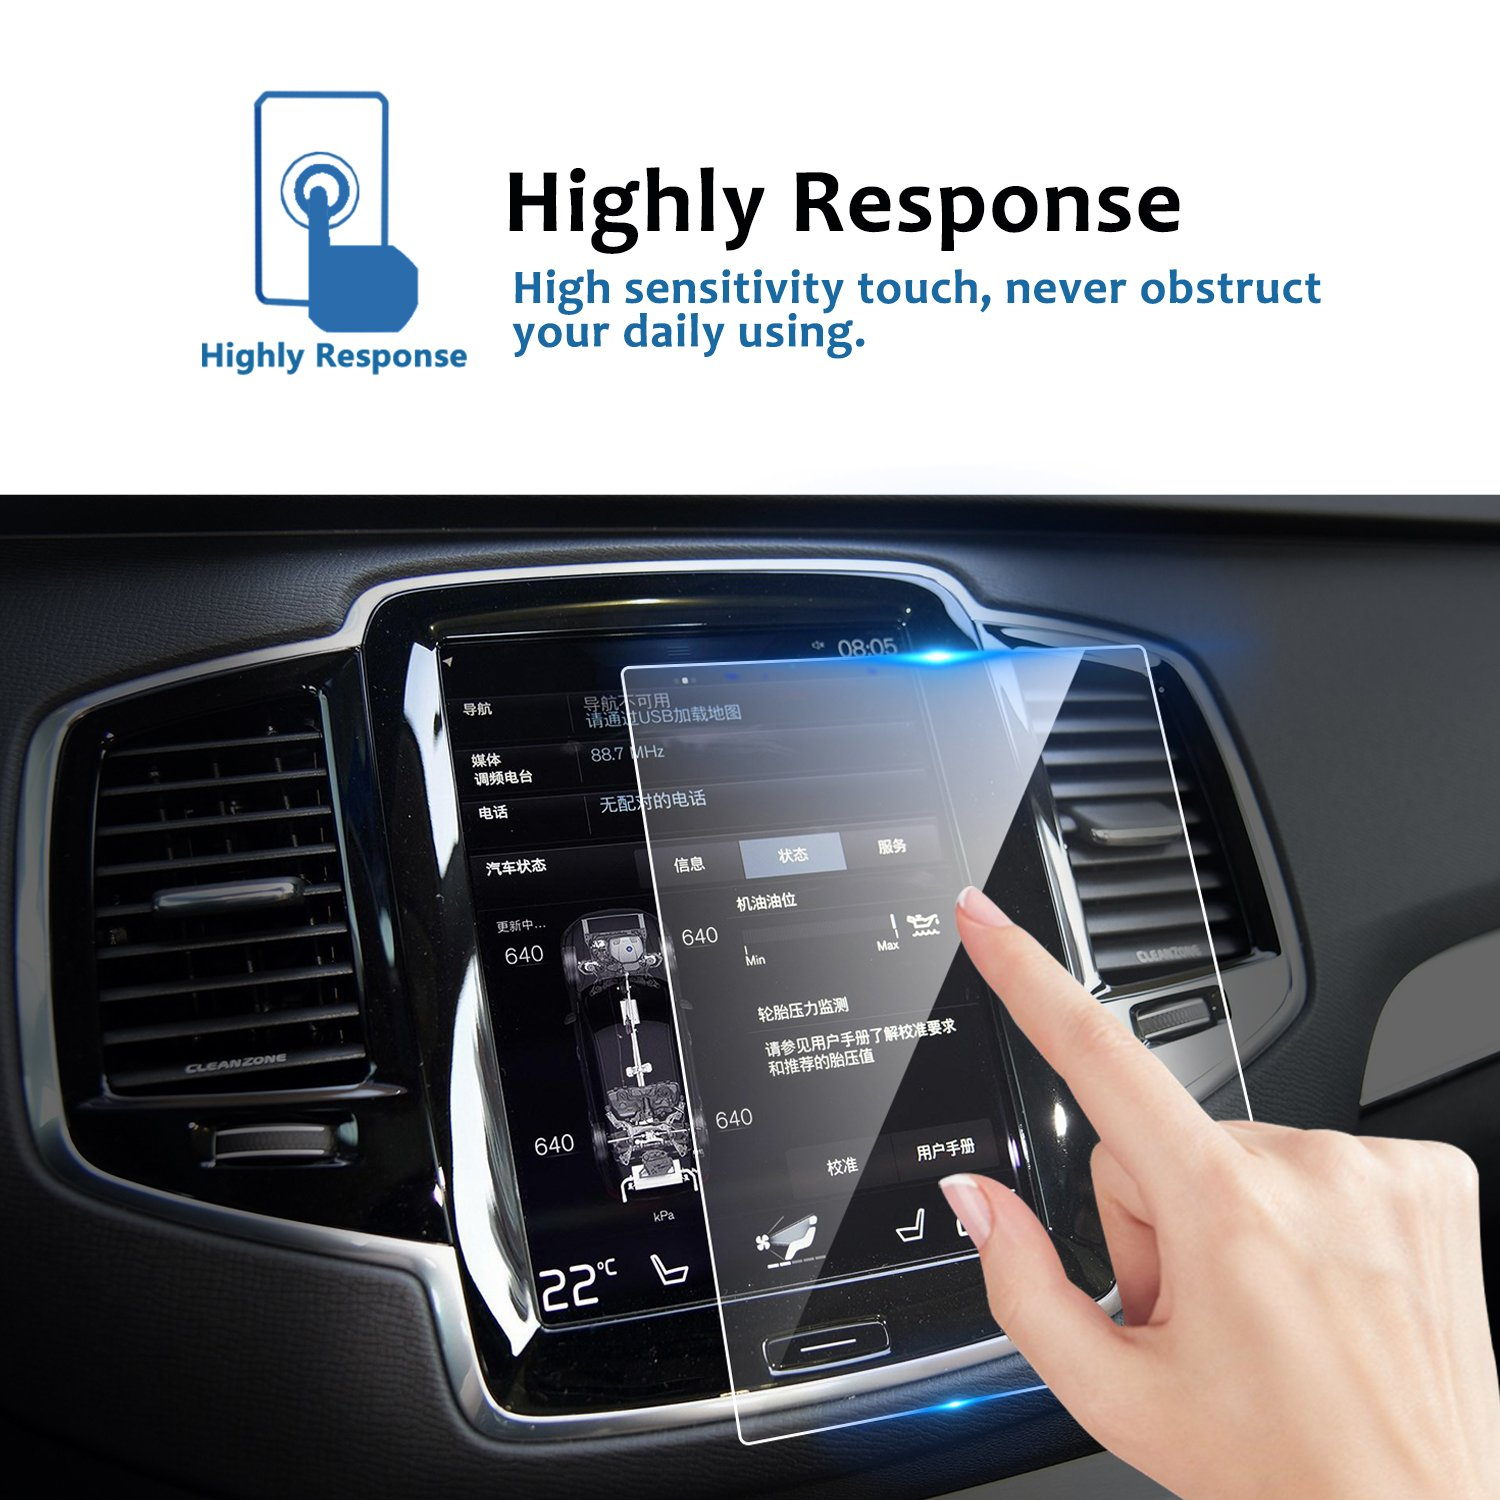 LFOTPP Volvo V90 XC90 S90 Sensus 8.7 Inch Car Navigation Screen Protector,[9H] Tempered Glass Infotainment Screen Center Touch Screen Protector Anti Scratch High Clarity by LFOTPP (Image #3)